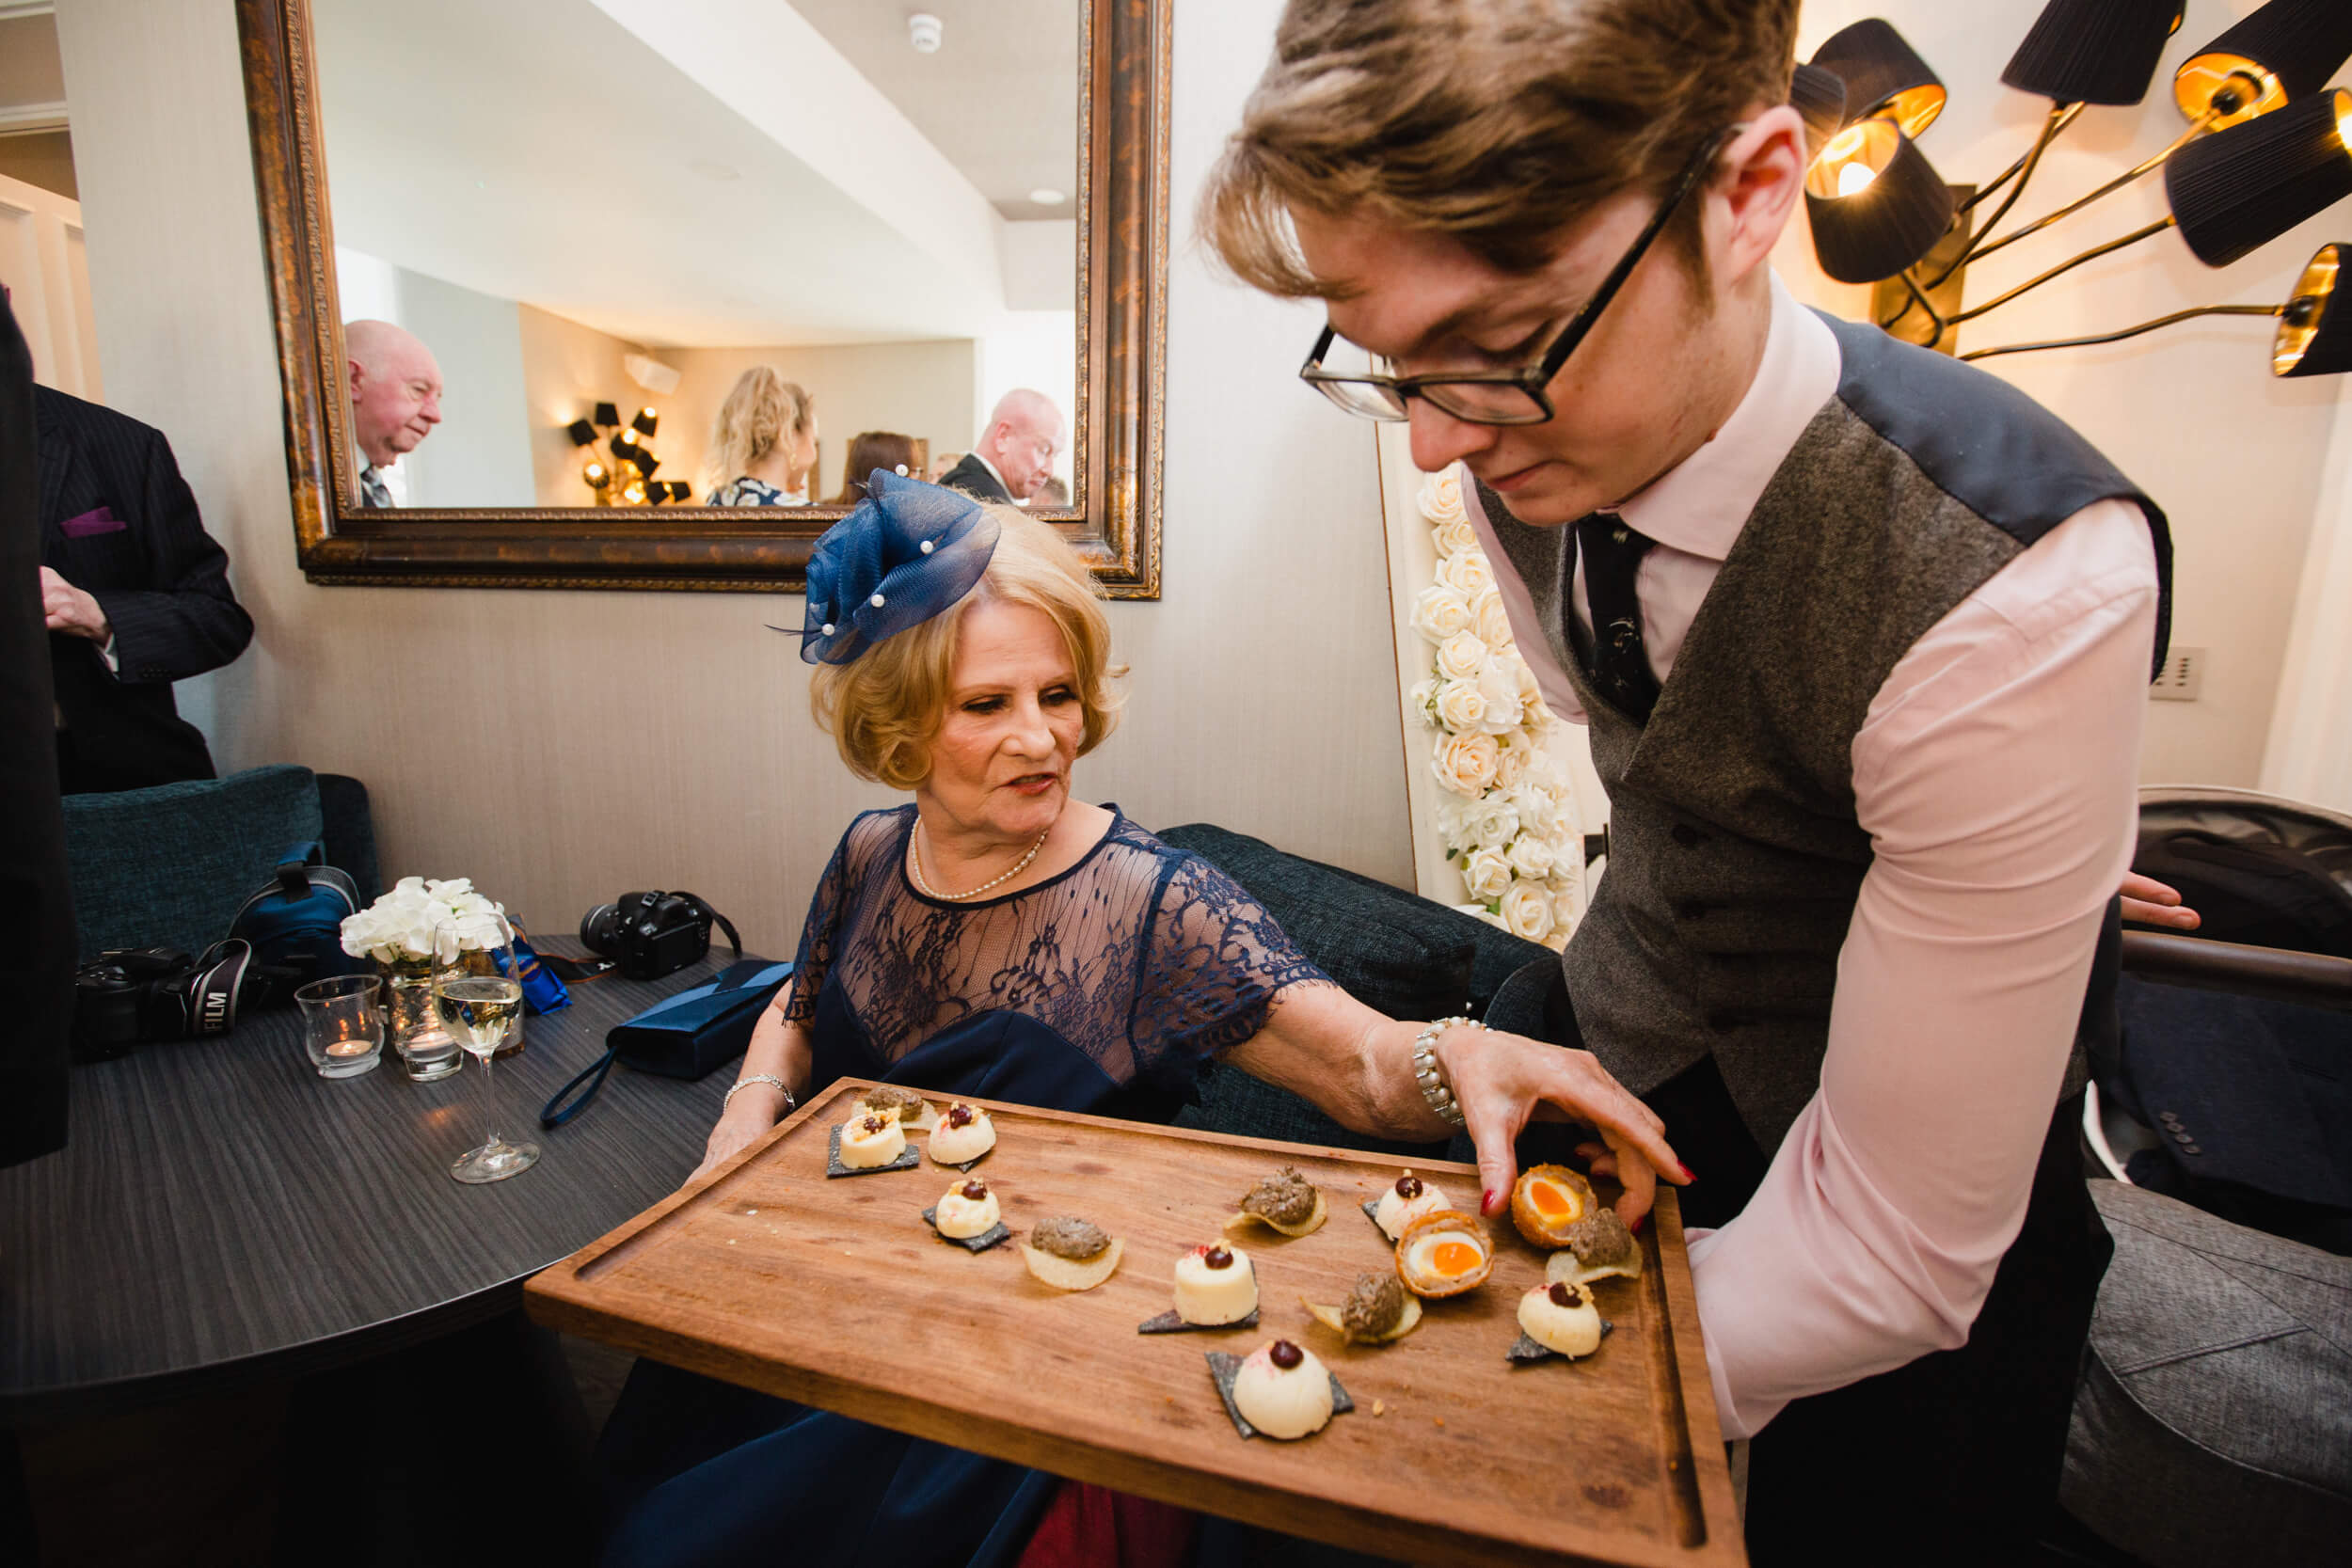 wedding guest reaches out for canapé